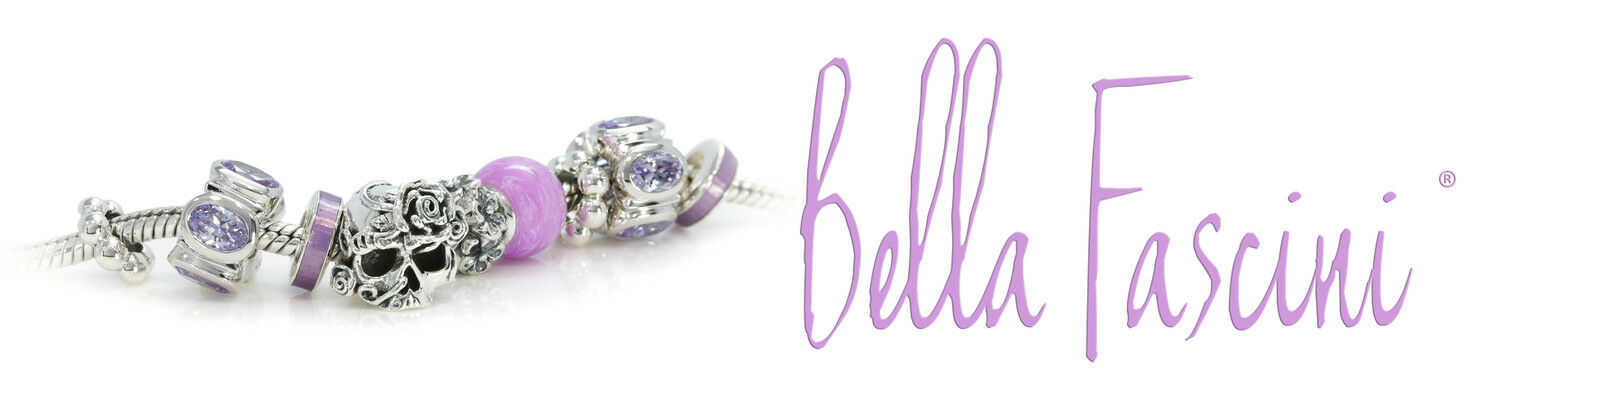 BELLA FASCINI Beads